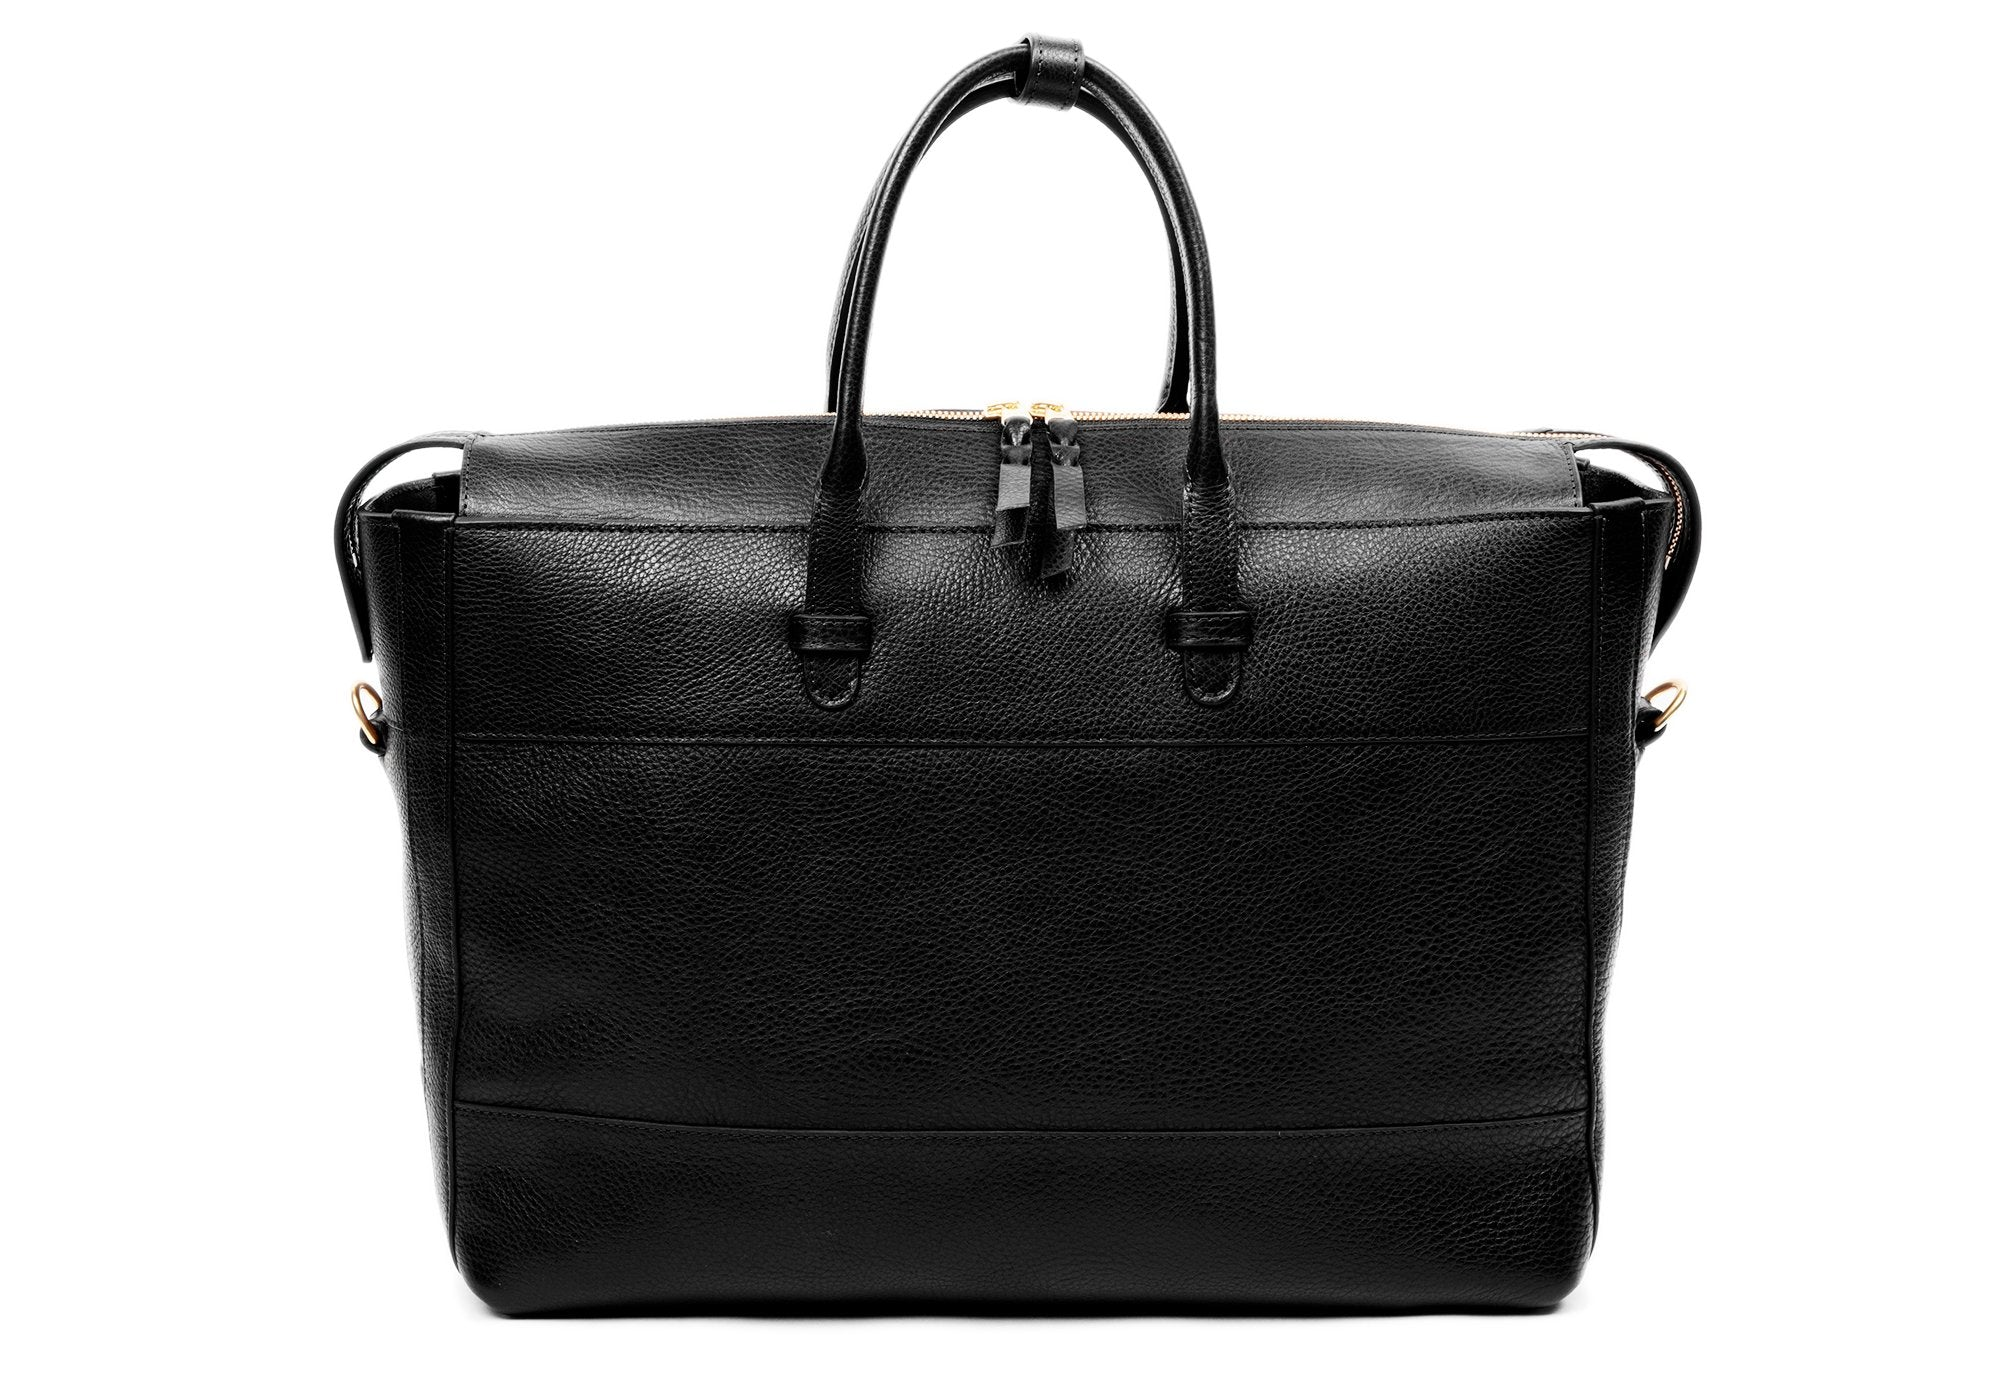 The 929 Briefcase Black